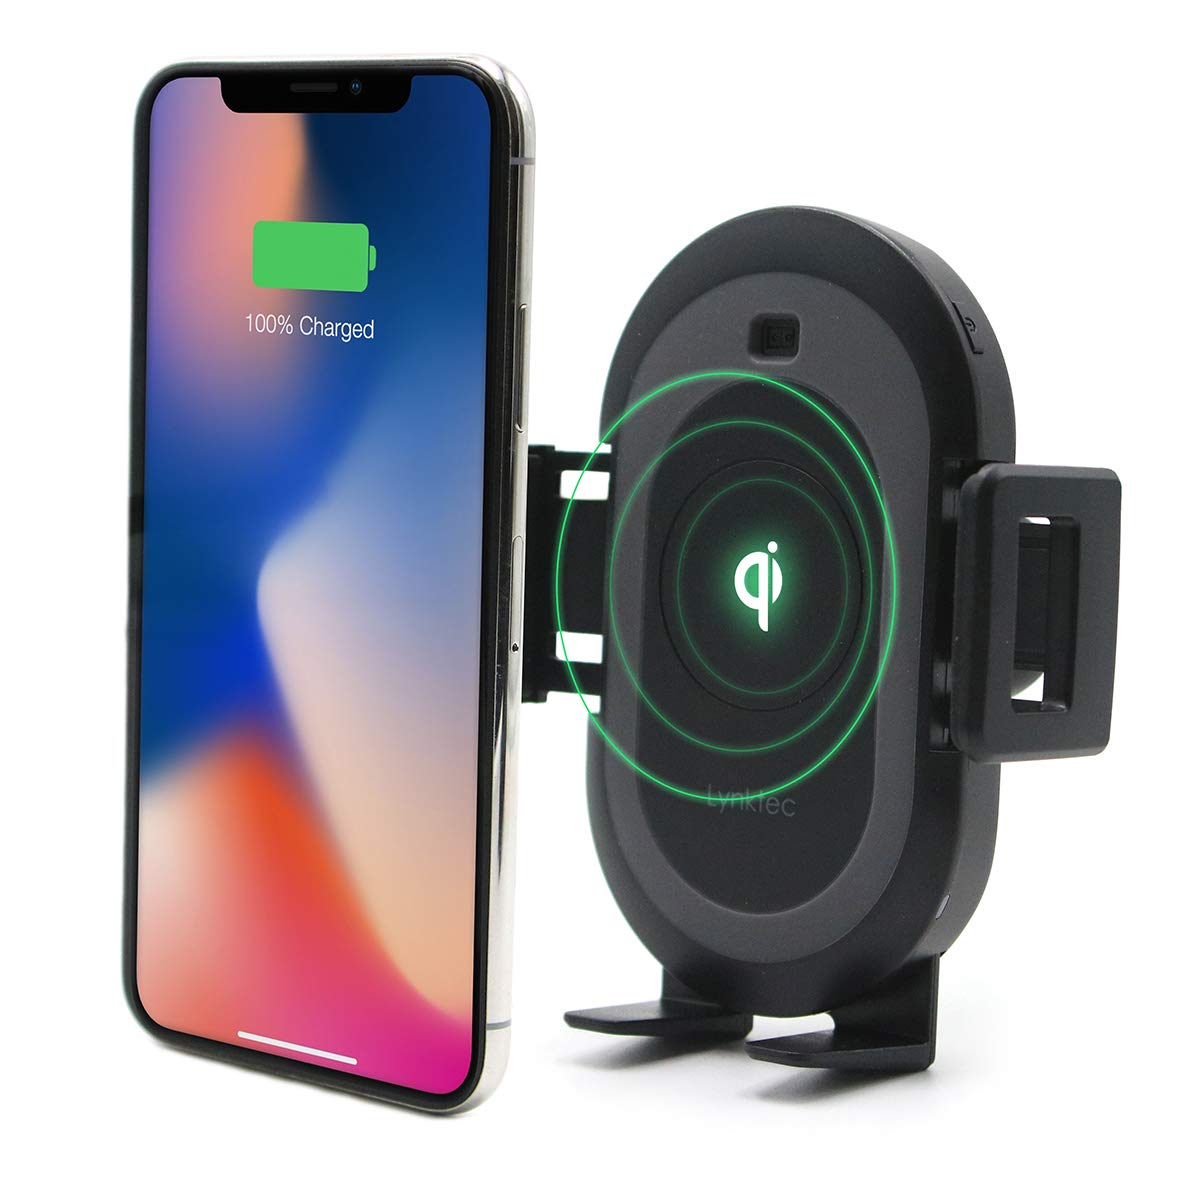 Bolt Smart Automatic Car Mount Qi Fast Wireless Charger for iPhone X, XS, 8, 8 Plus, Samsung Galaxy S9, 9, S8, 8, and Qi-Enabled Devices by Lynktec